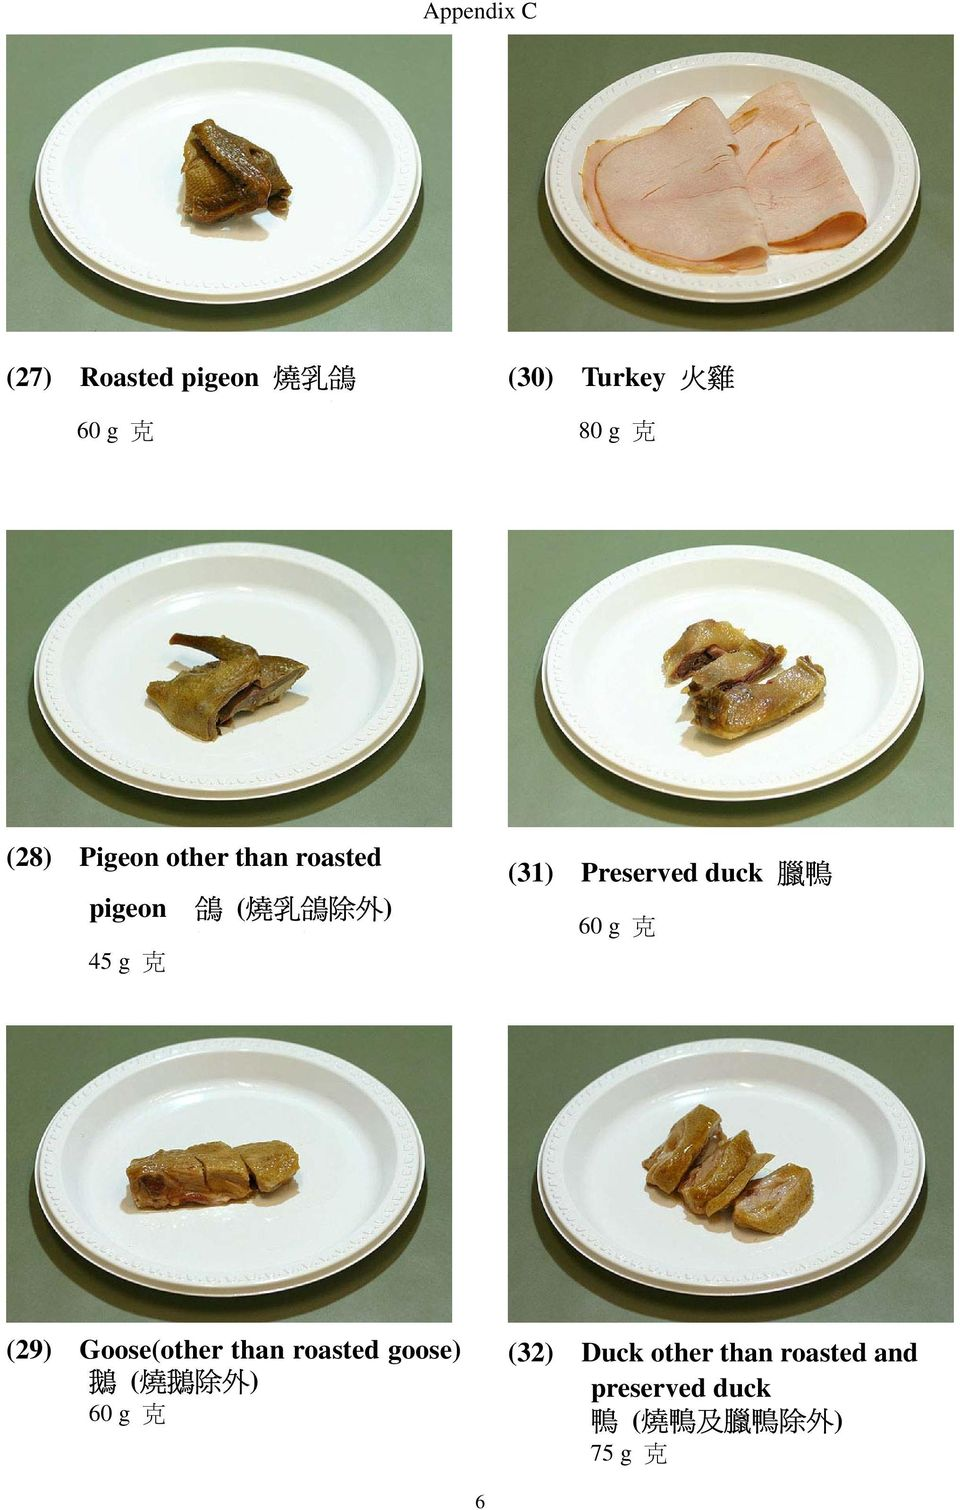 鴨 60 g 克 (29) Goose(other than roasted goose) 鵝 ( 燒 鵝 除 外 ) 60 g 克